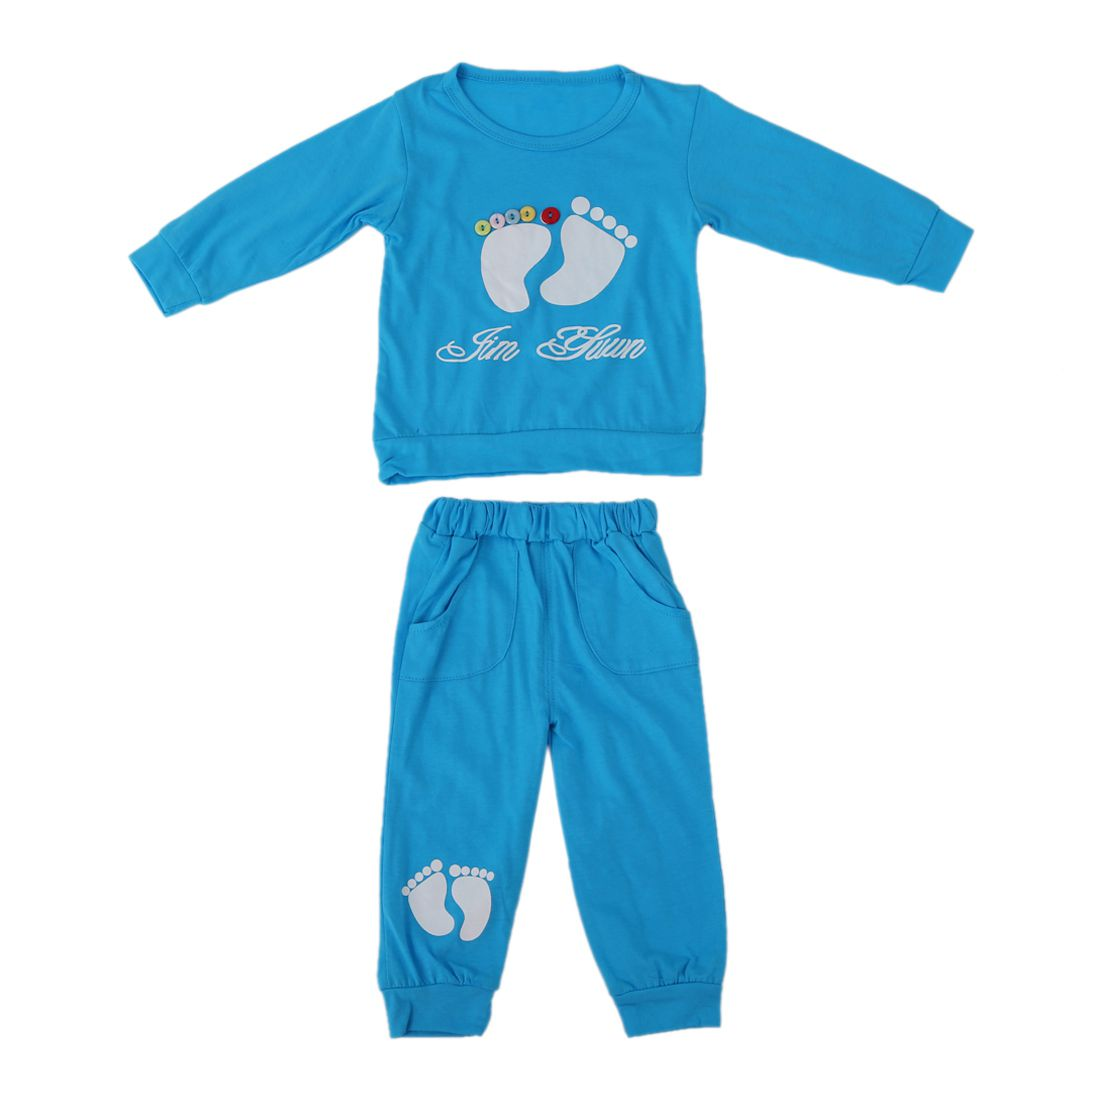 KEOL Best Sale High Quality 100% Cotton baby clothing set,Toddlers children set,baby boys girls 2 pcs Footprints ,Hot sale-Blu